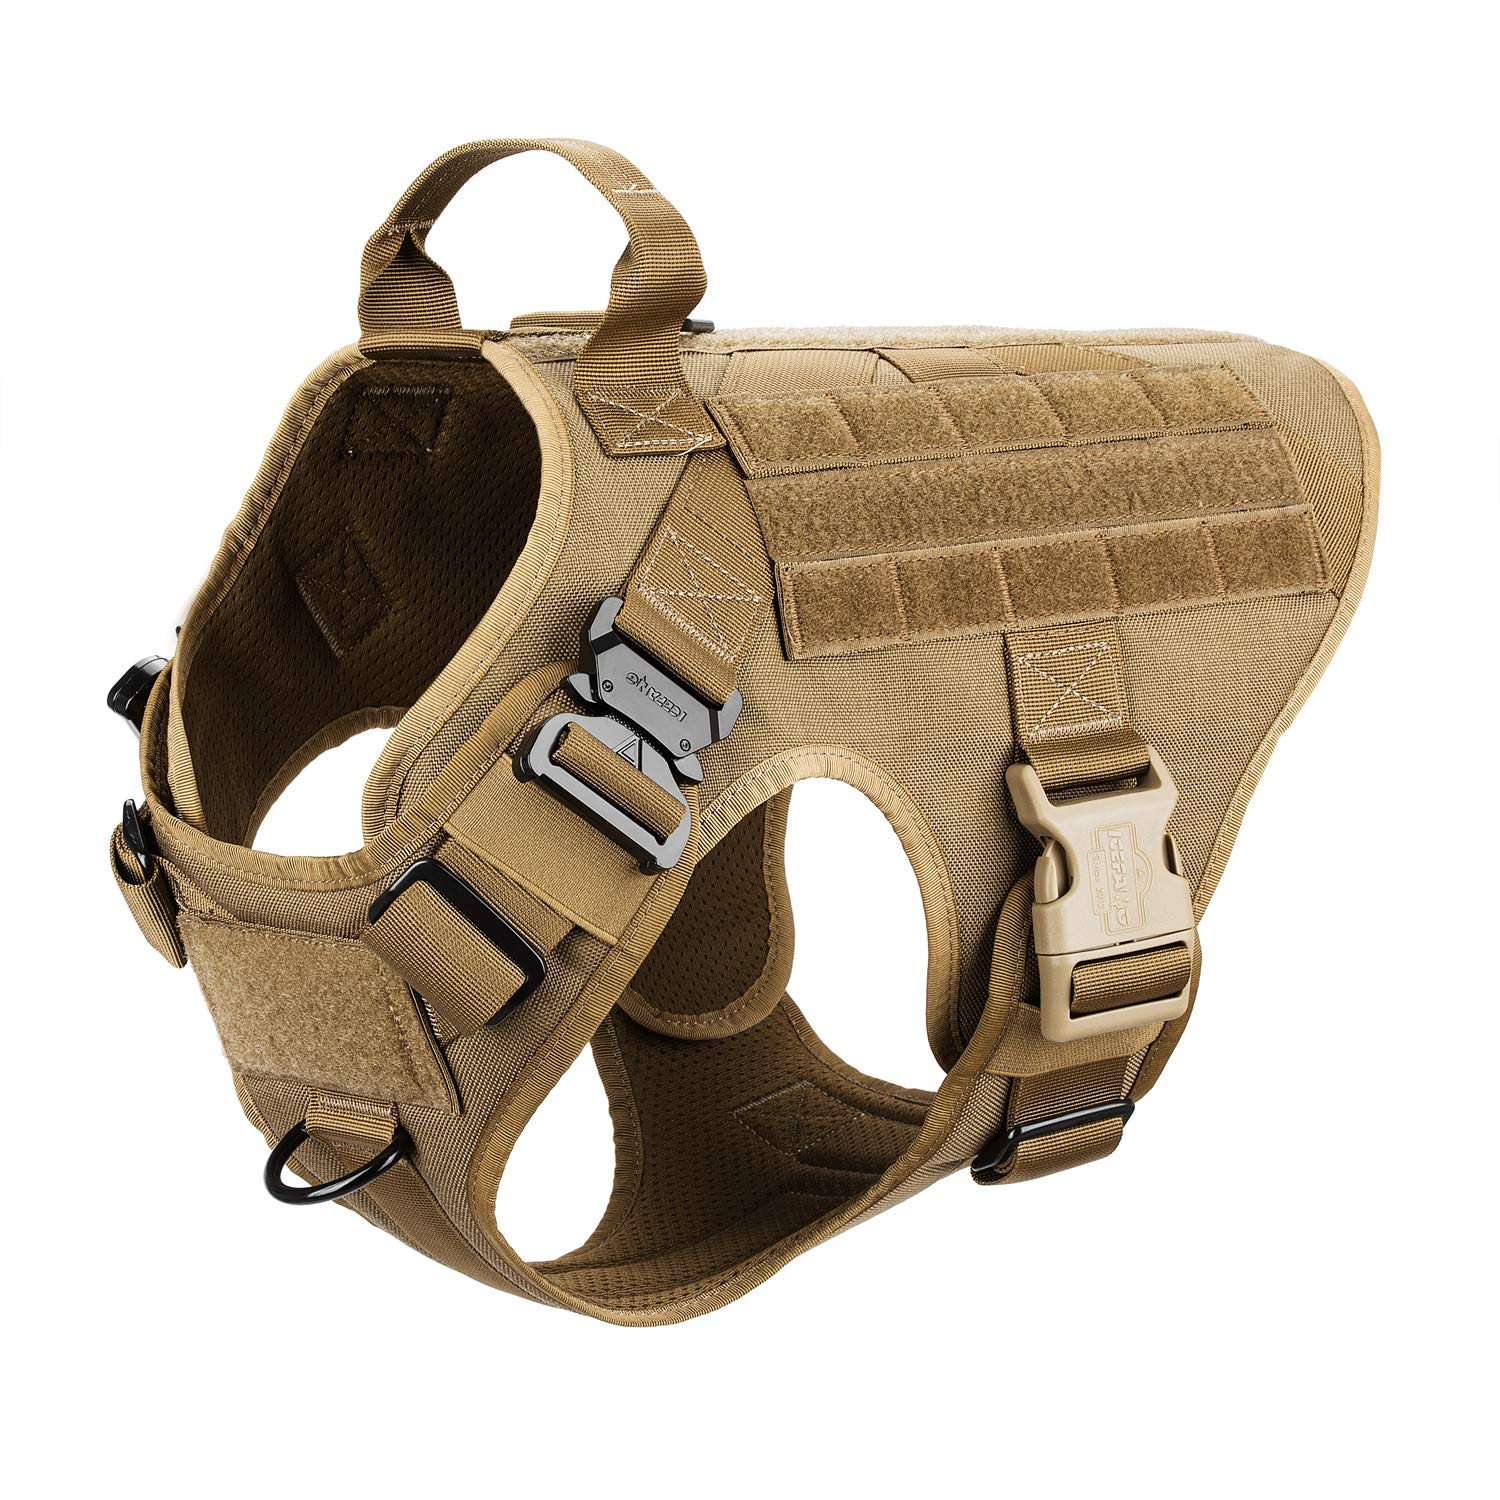 ICEFANG Large Dog Tactical Harness,Military K9 Working Dog Molle Vest,No Pulling Front Clip,Metal Buckle Easy Put On Off (L (28''-35'' Girth), CB-Molle Half Body) by ICEFANG